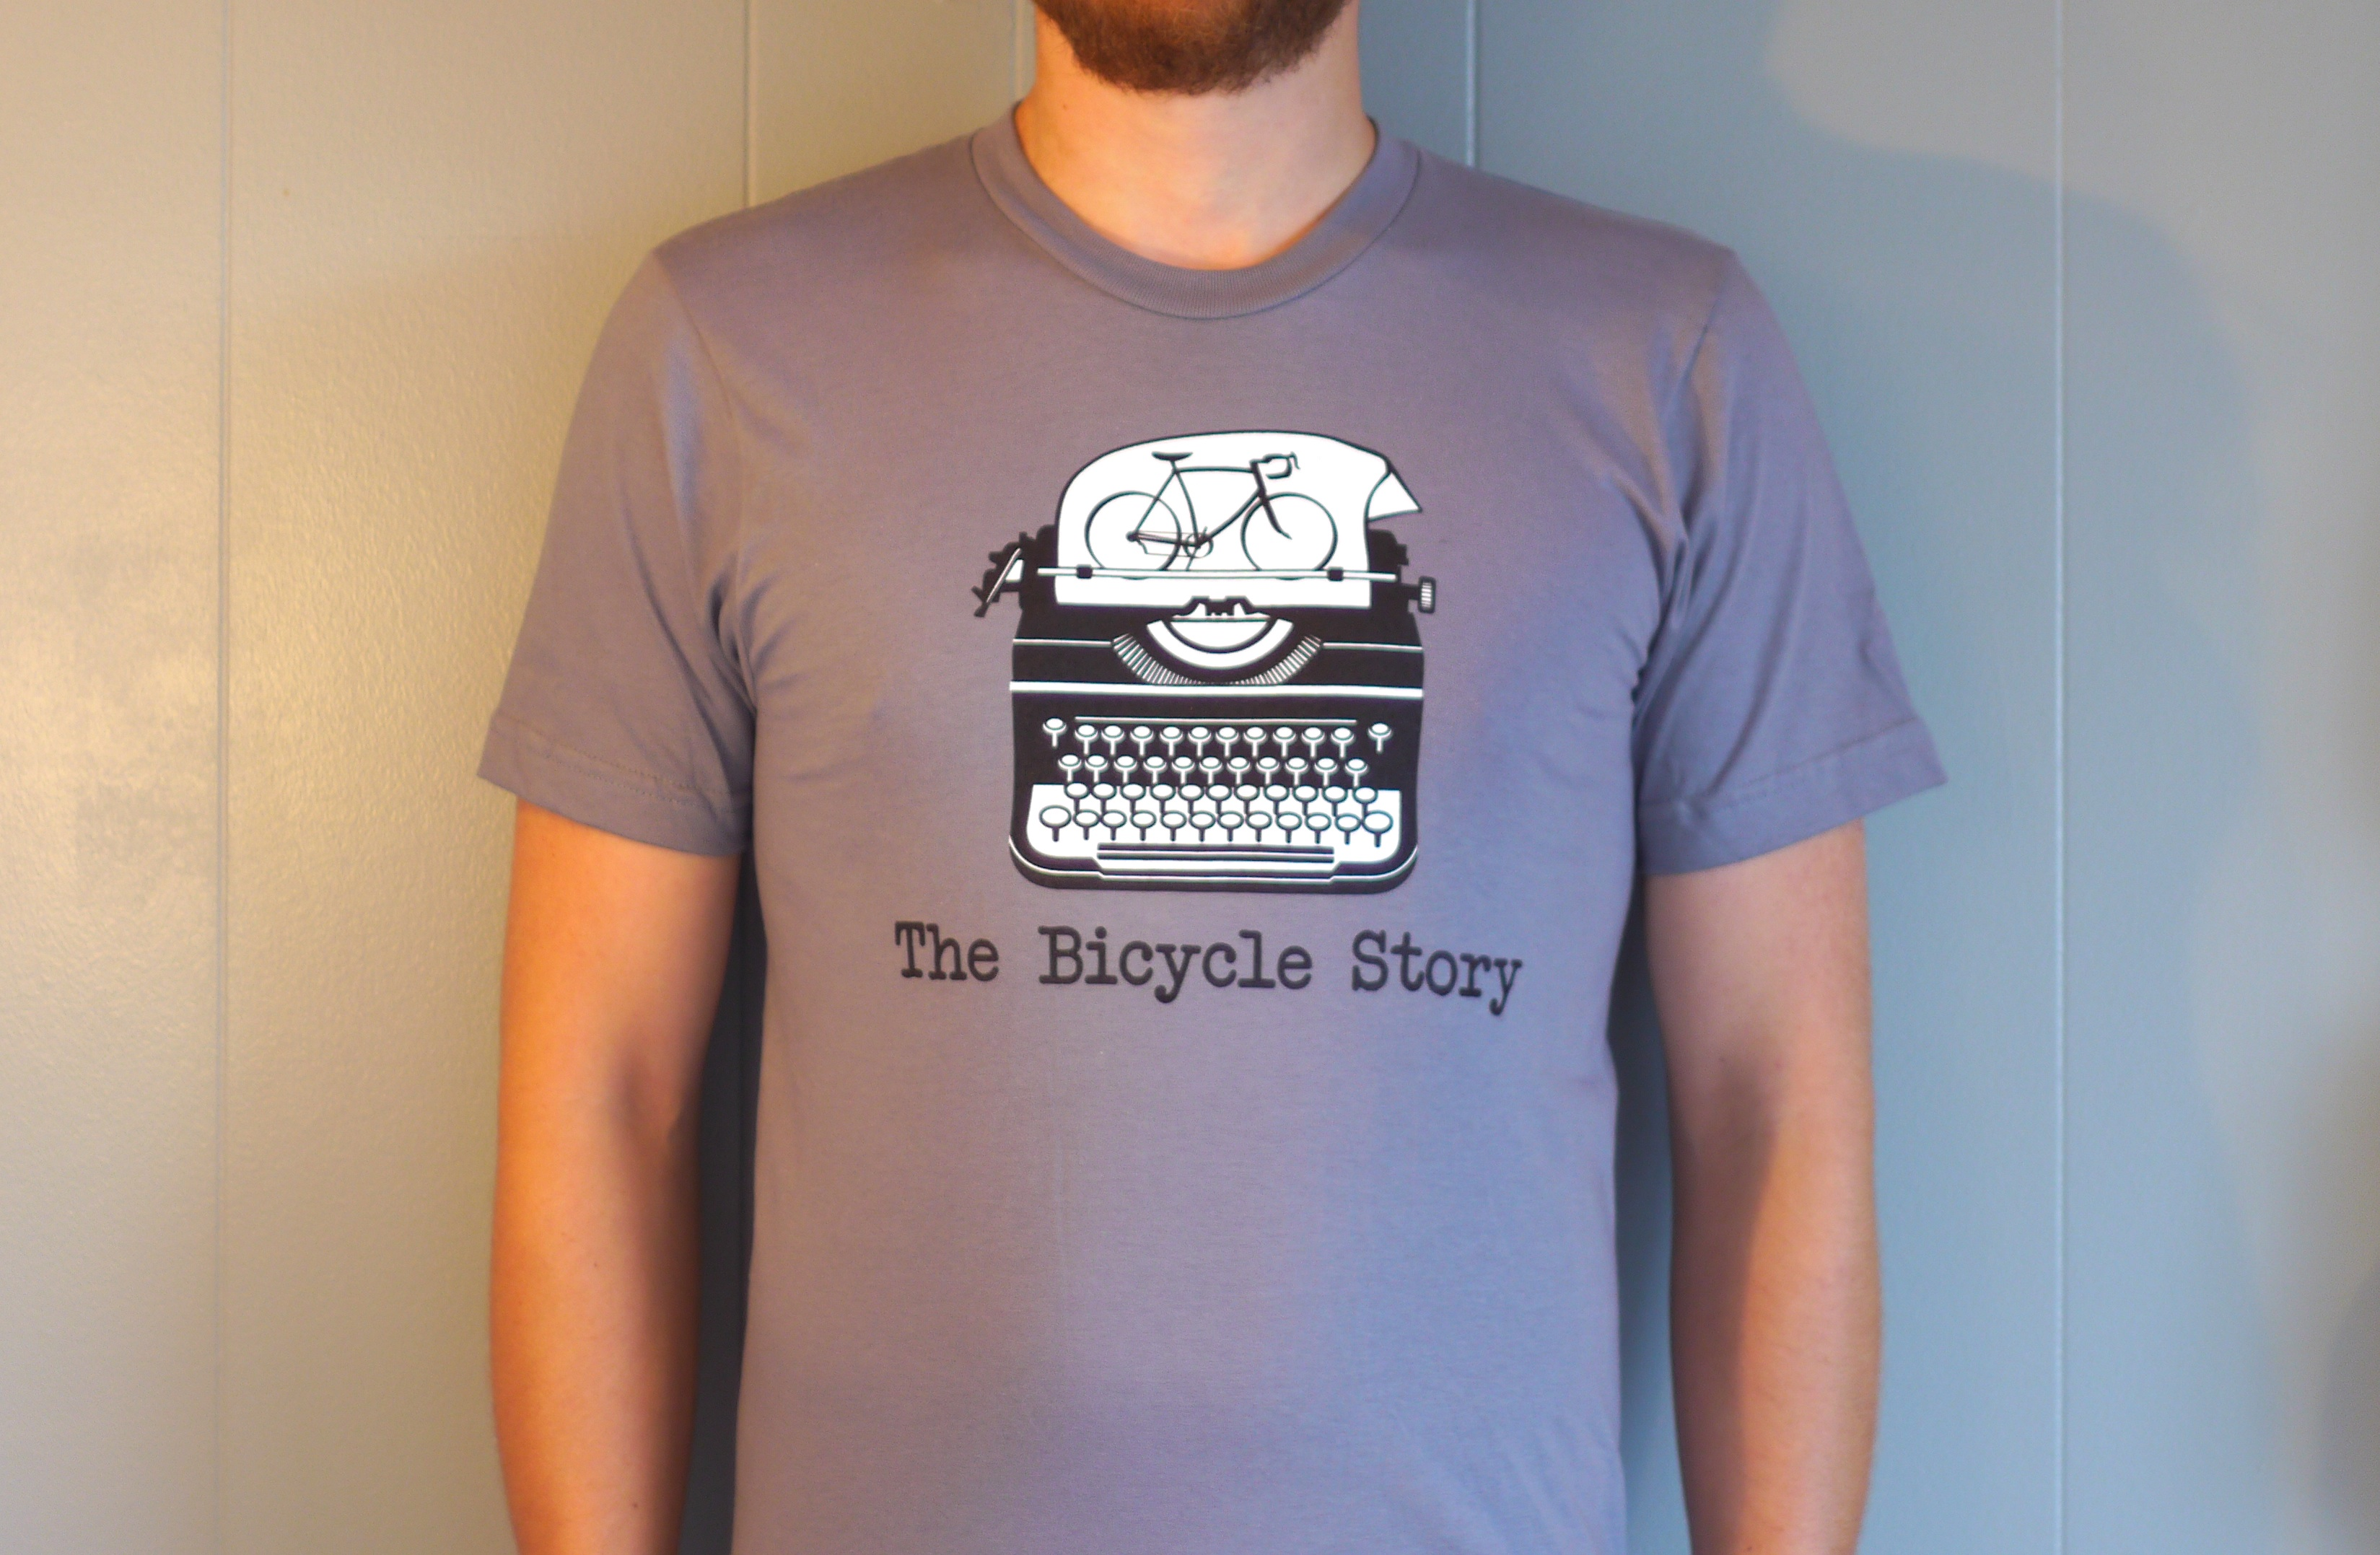 October 2014 The Bicycle Story T Shirt National Geographic Adventure Web Shop